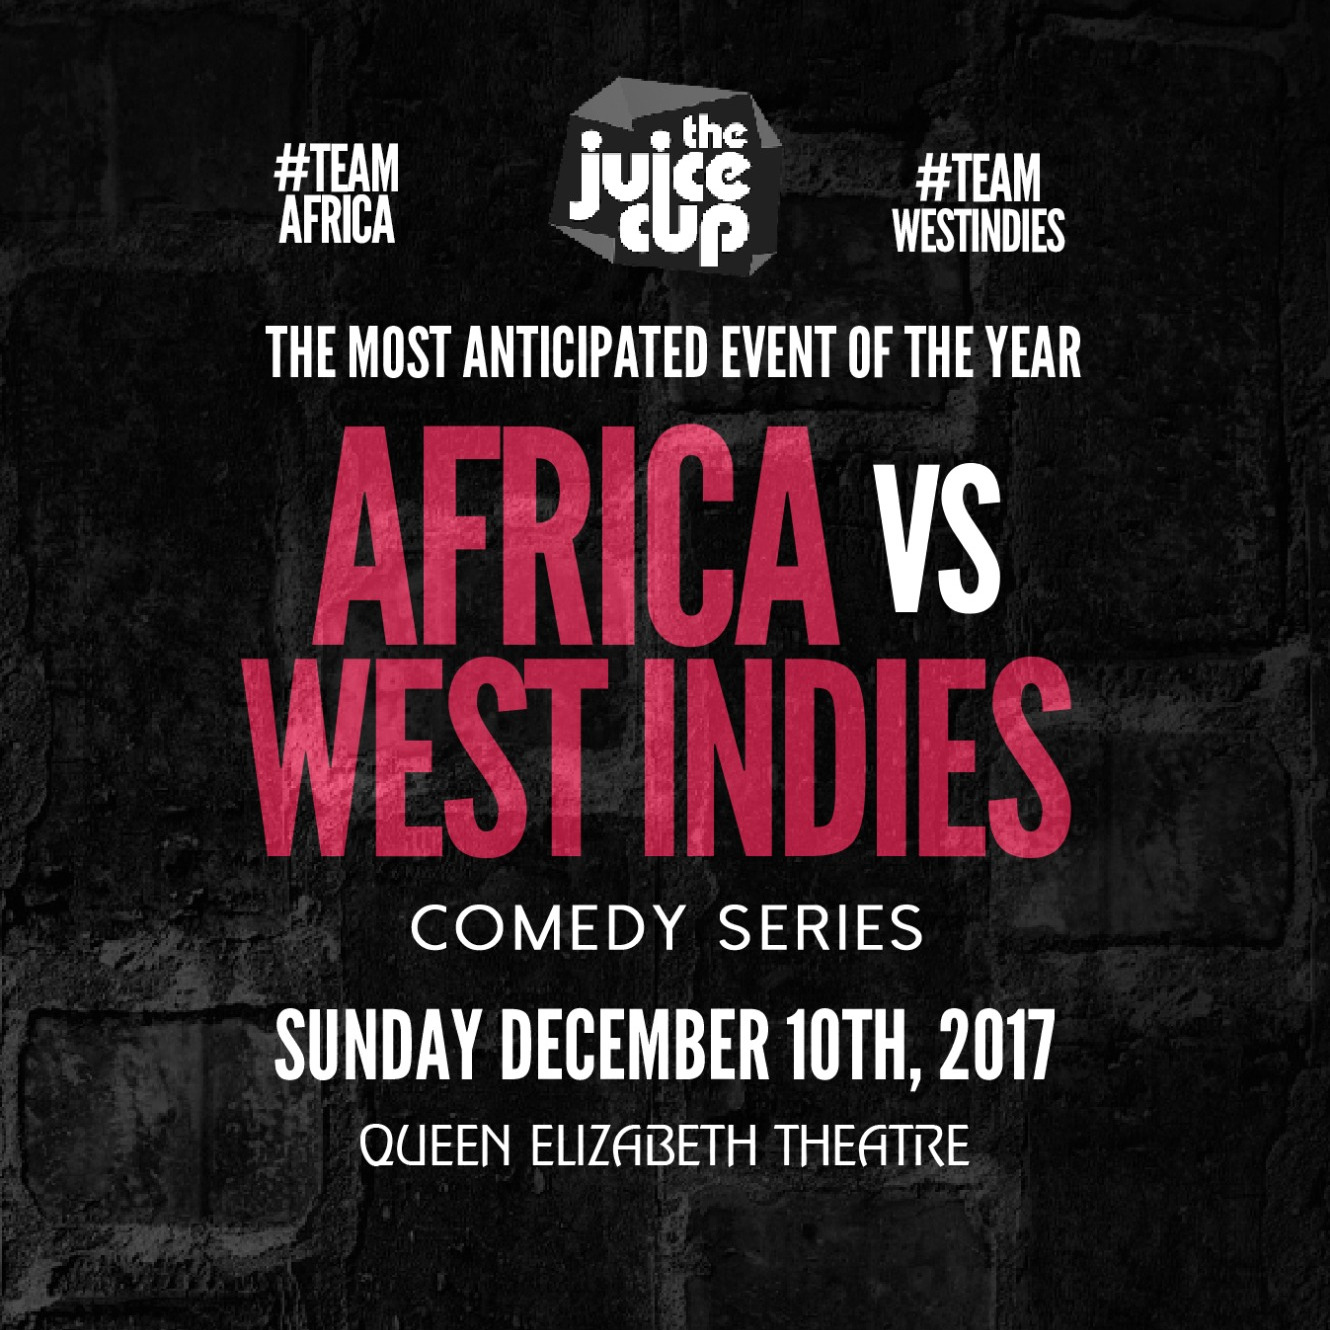 The 2017 JUICE CUP : Africa Vs West Indies Comedy Series